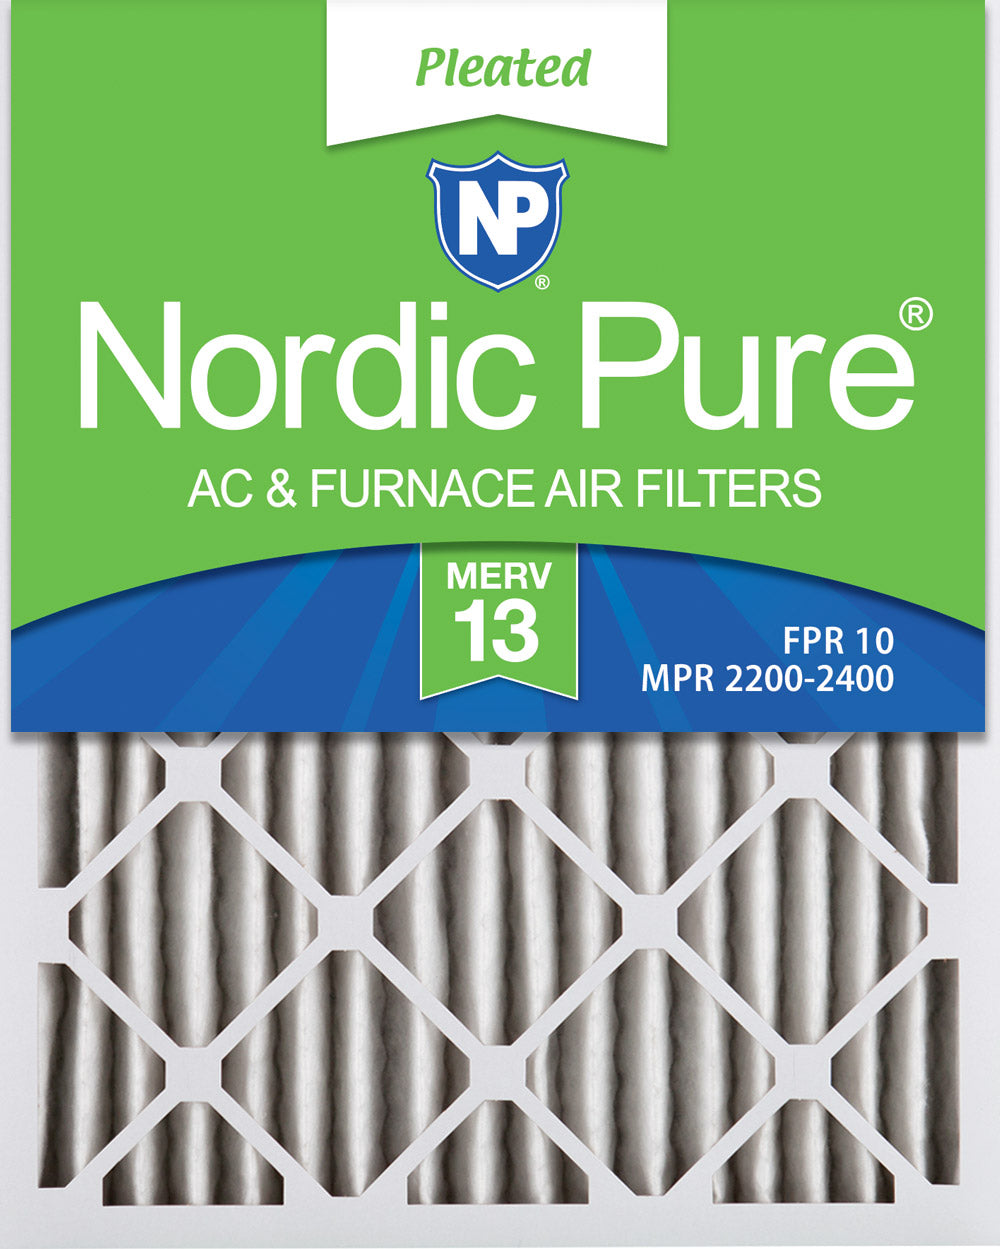 14x20x2 Pleated MERV 13 Air Filters 12 Pack